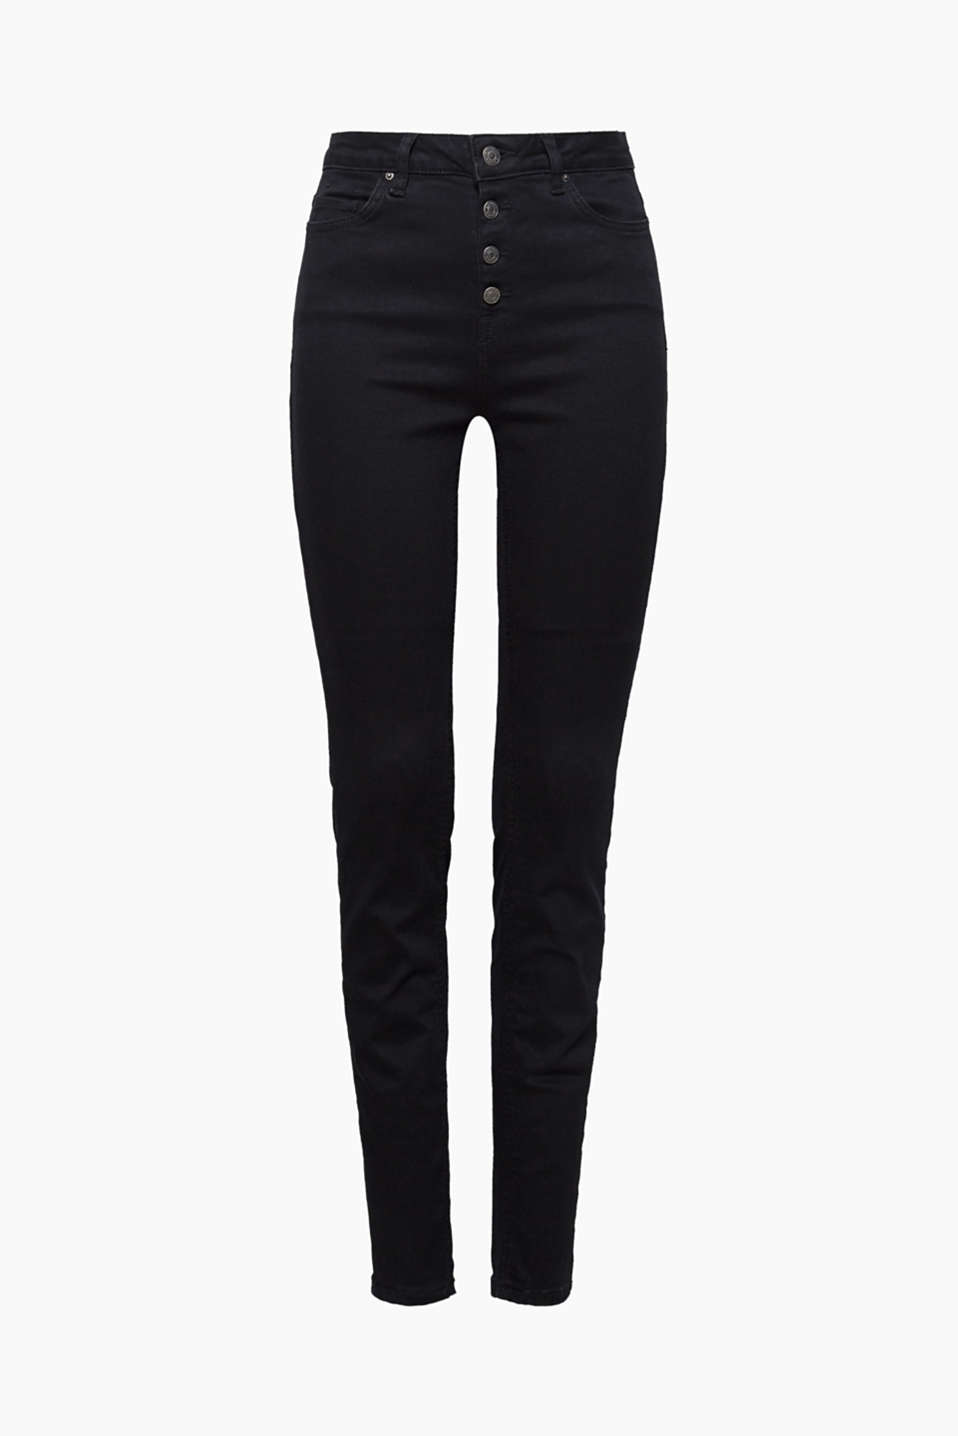 These black jeans with a figure-shaping effect and an extra-high waistband create a dream silhouette!